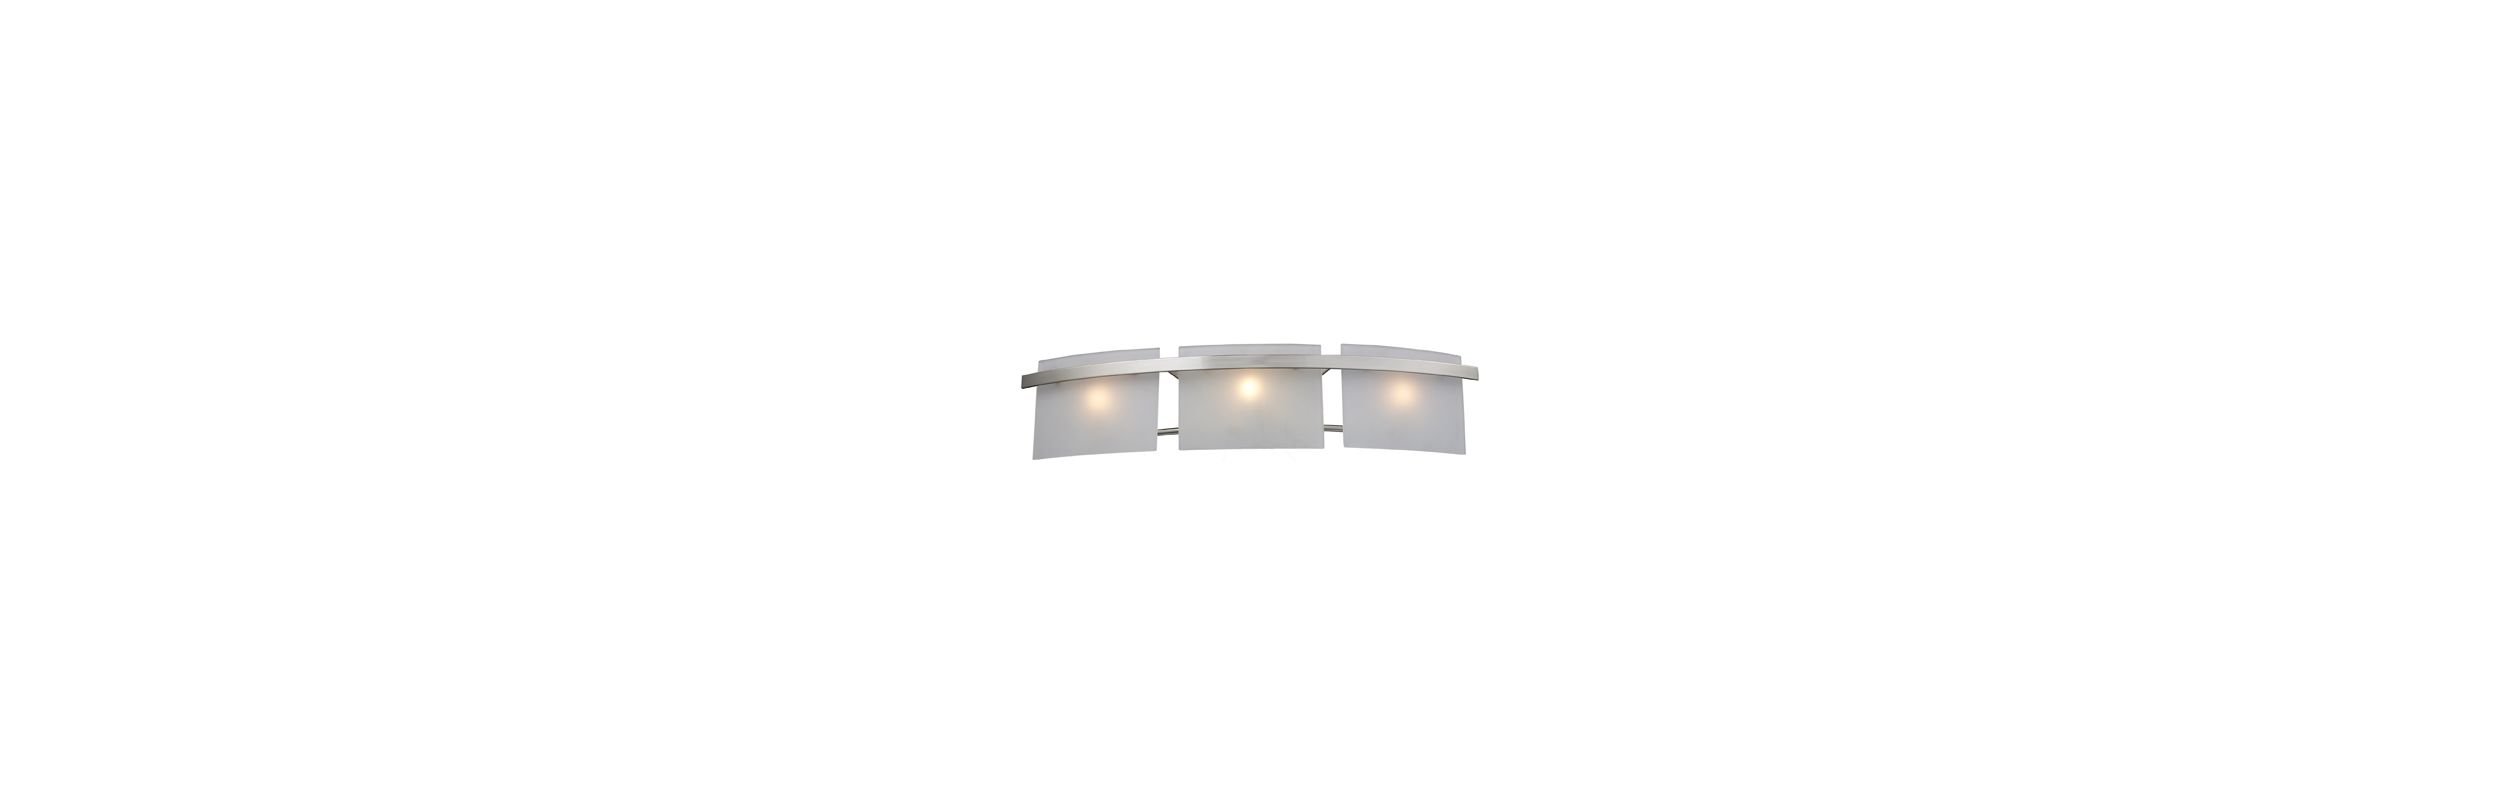 Elk Lighting 11282/3 Satin Nickel Contemporary Briston Bathroom Light